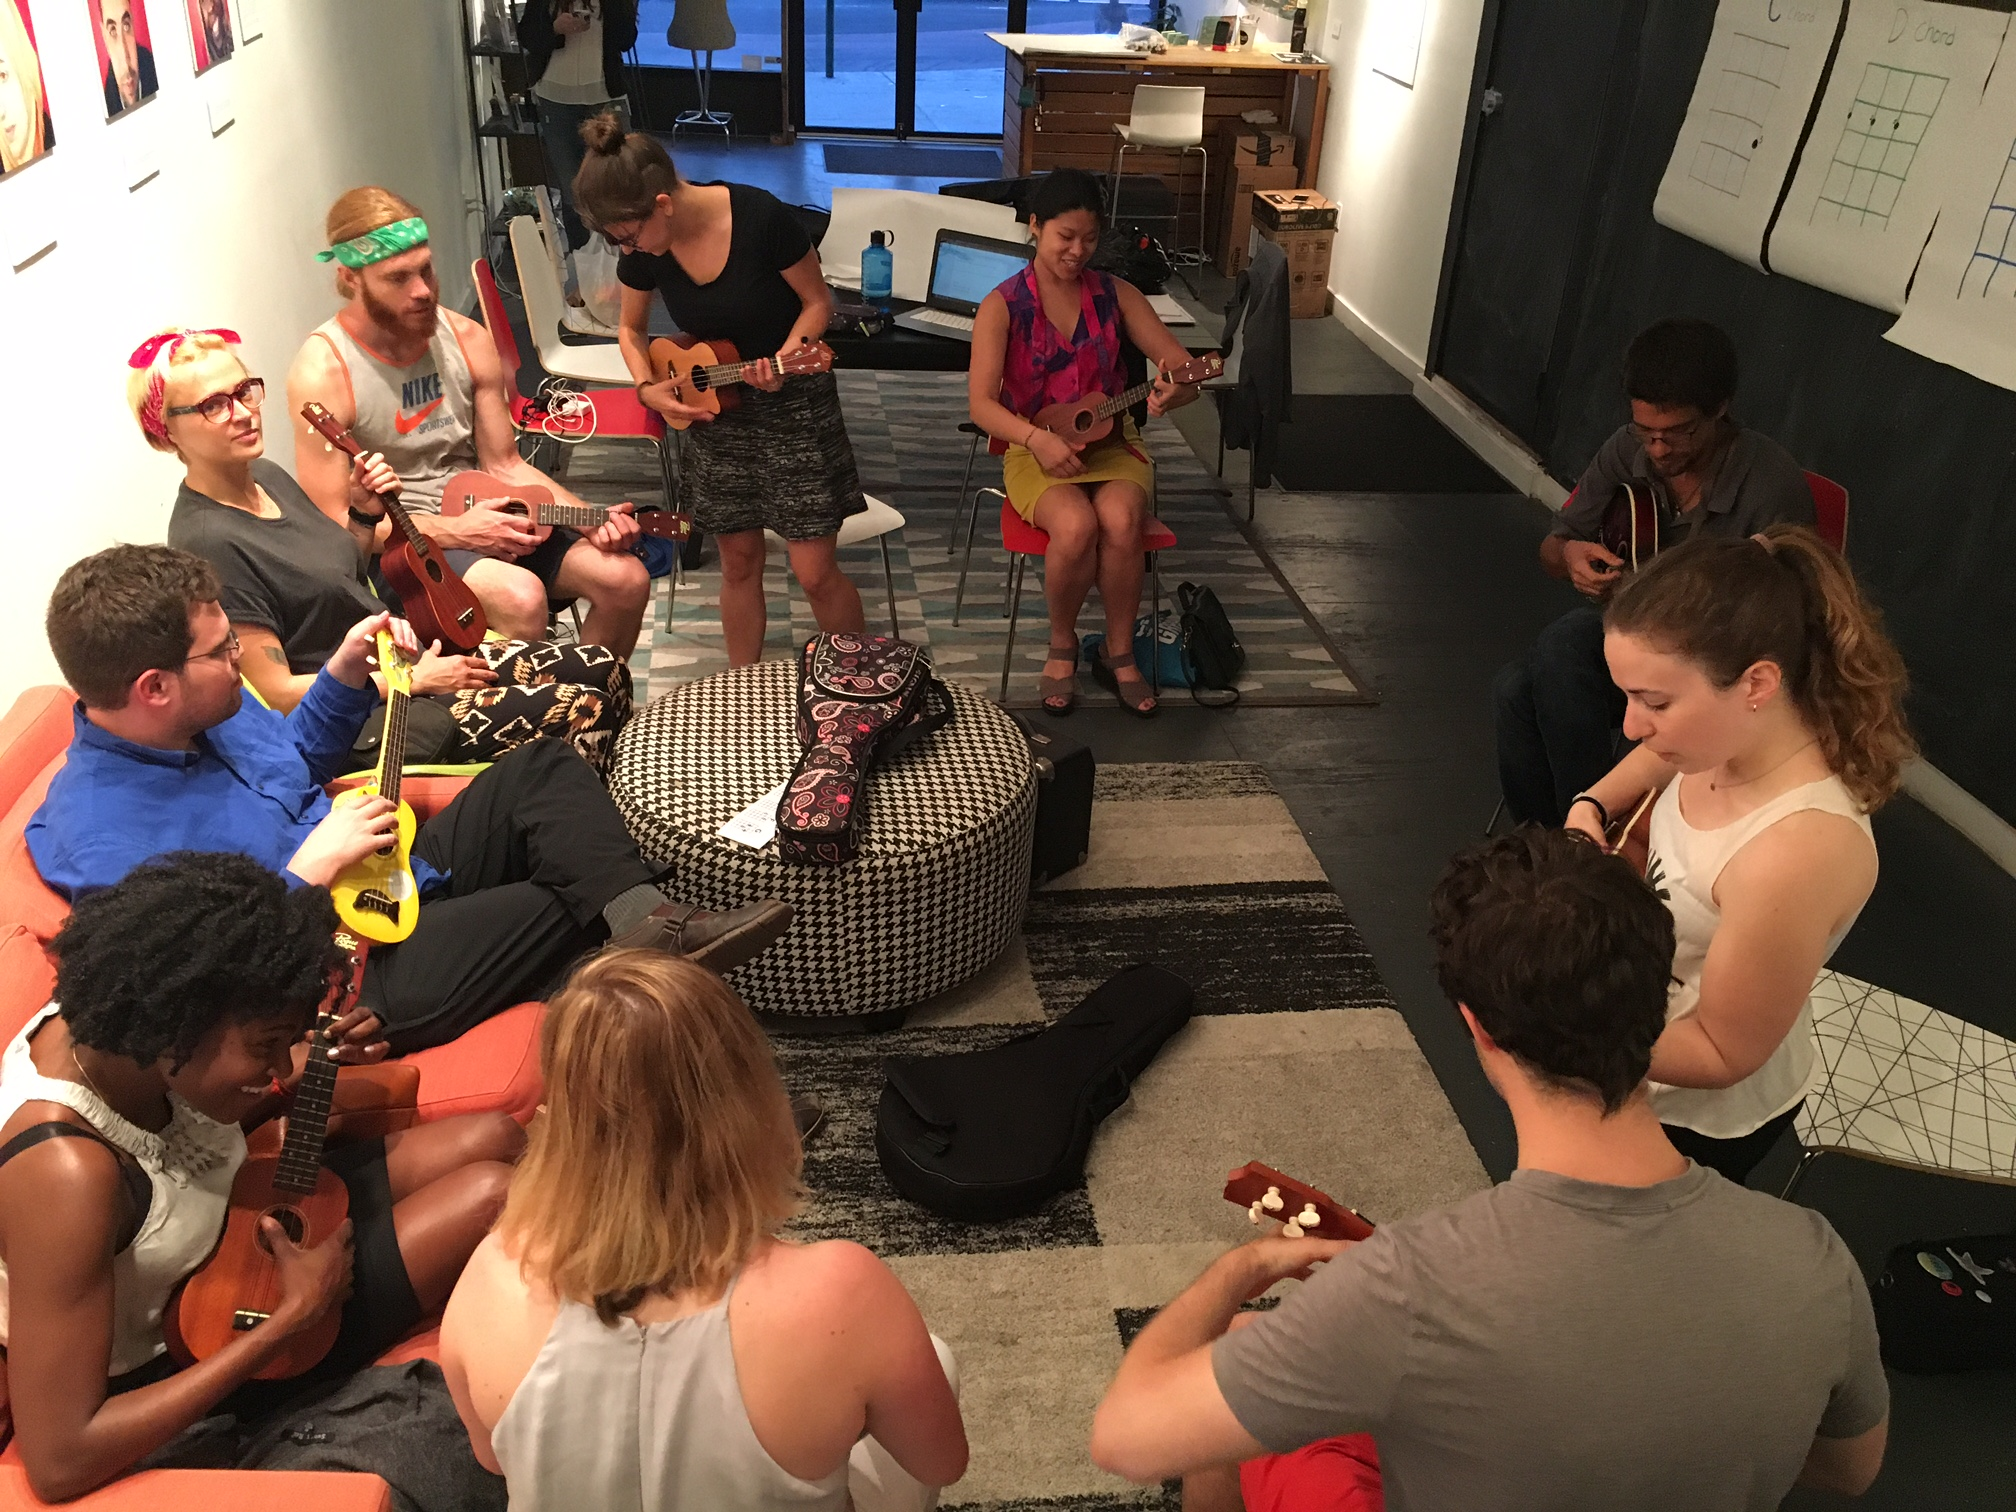 A typical meeting of the Crown Heights Ukulele Club at 808 Nostrand Ave.